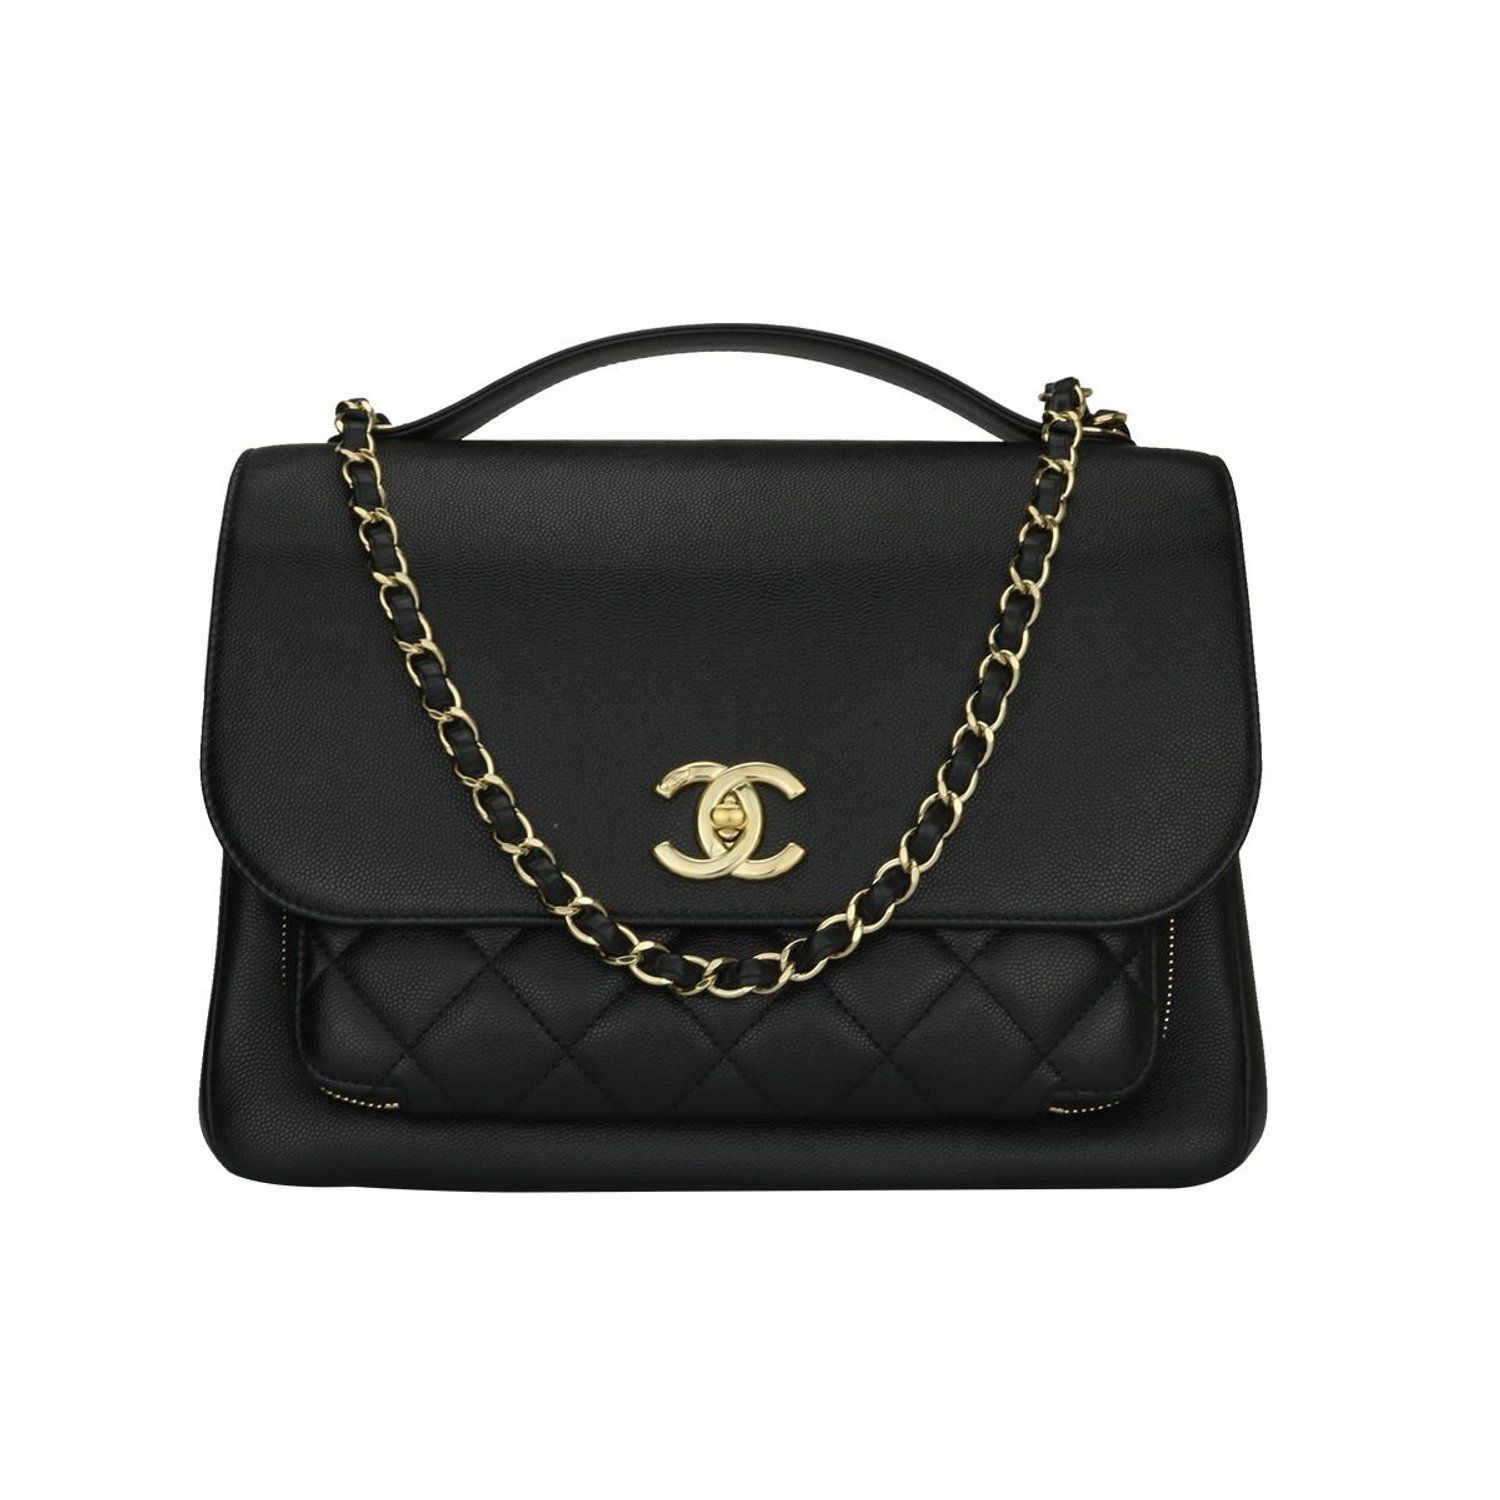 1dd2009d7835 CHANEL Business Affinity Large Black Caviar with Champagne Hardware 2017